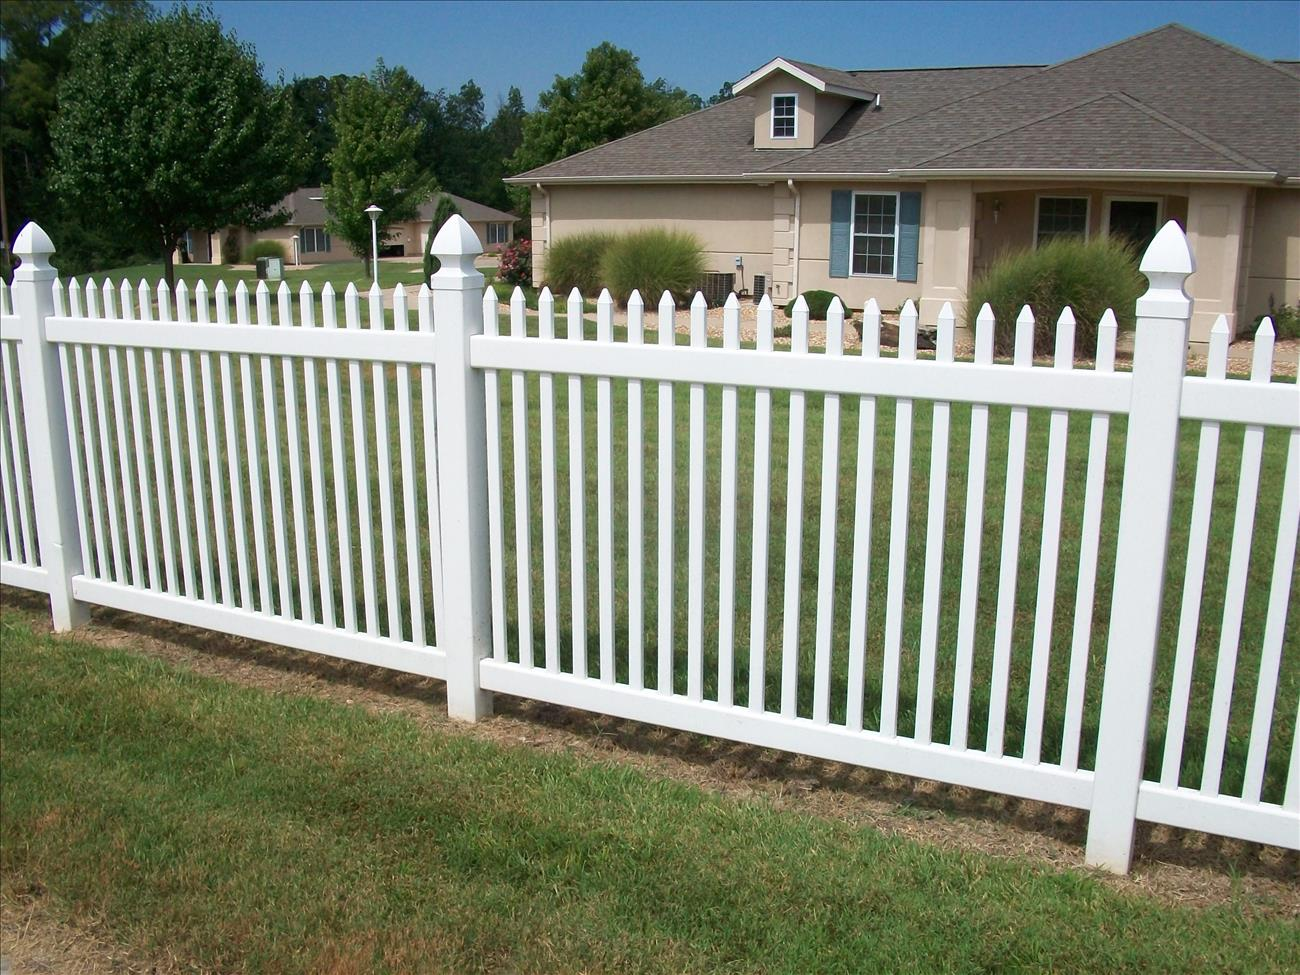 vinyl fence around luxury home